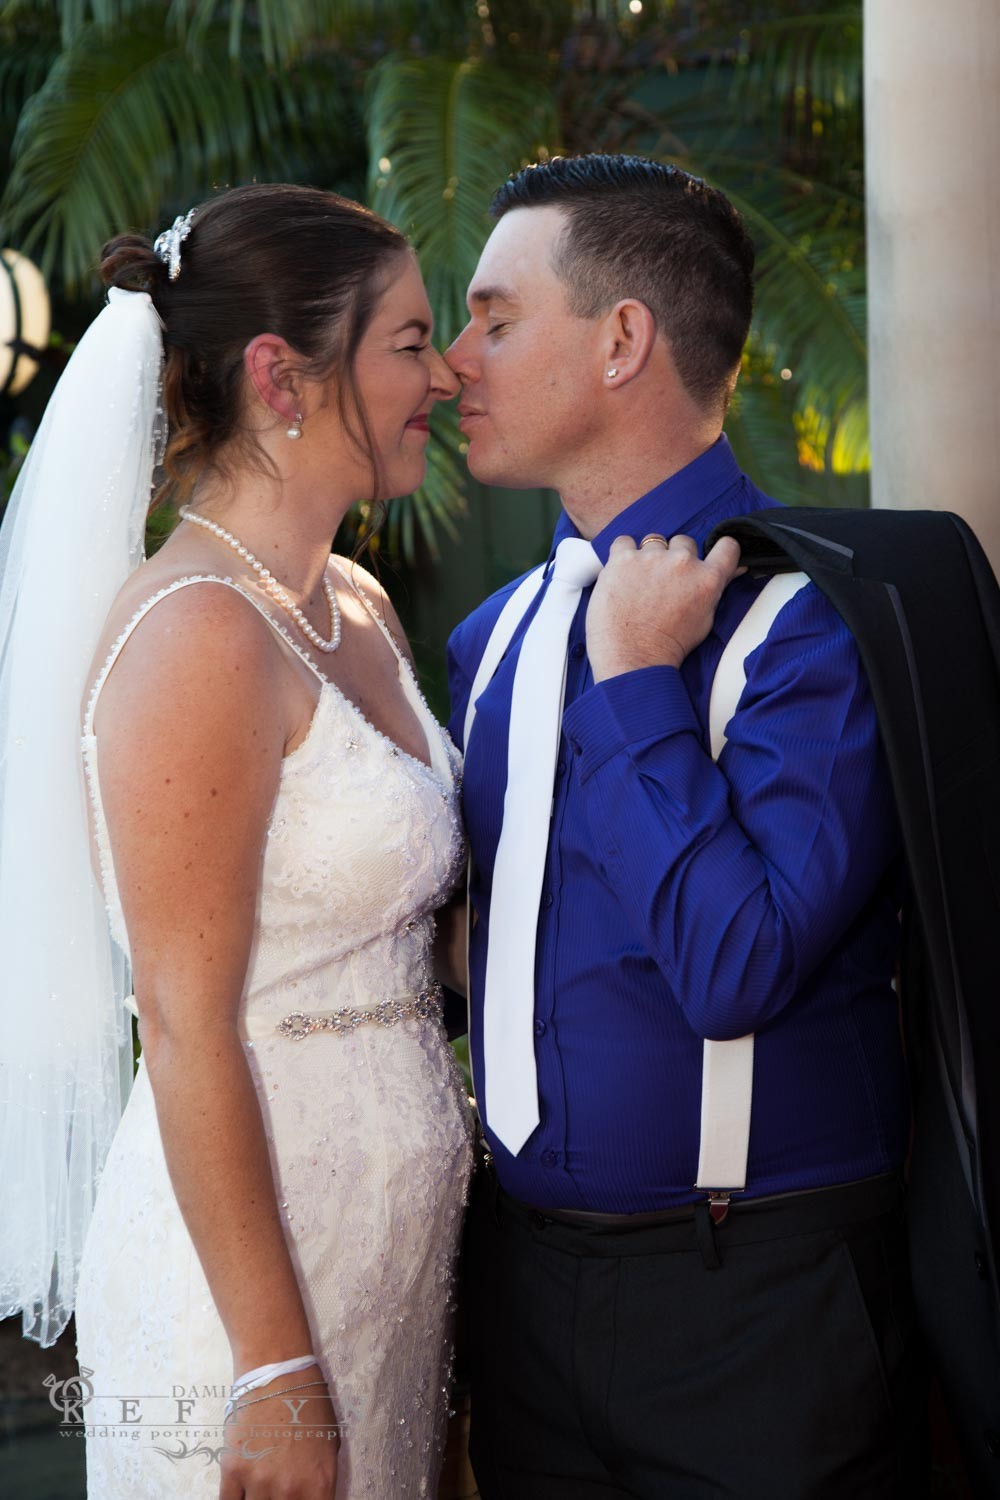 Wedding Photographer, Wedding Photography, Damien Keffyn Photography Sunshine Coast, Brisbane, Gold Coast, Queensland, Australia, International